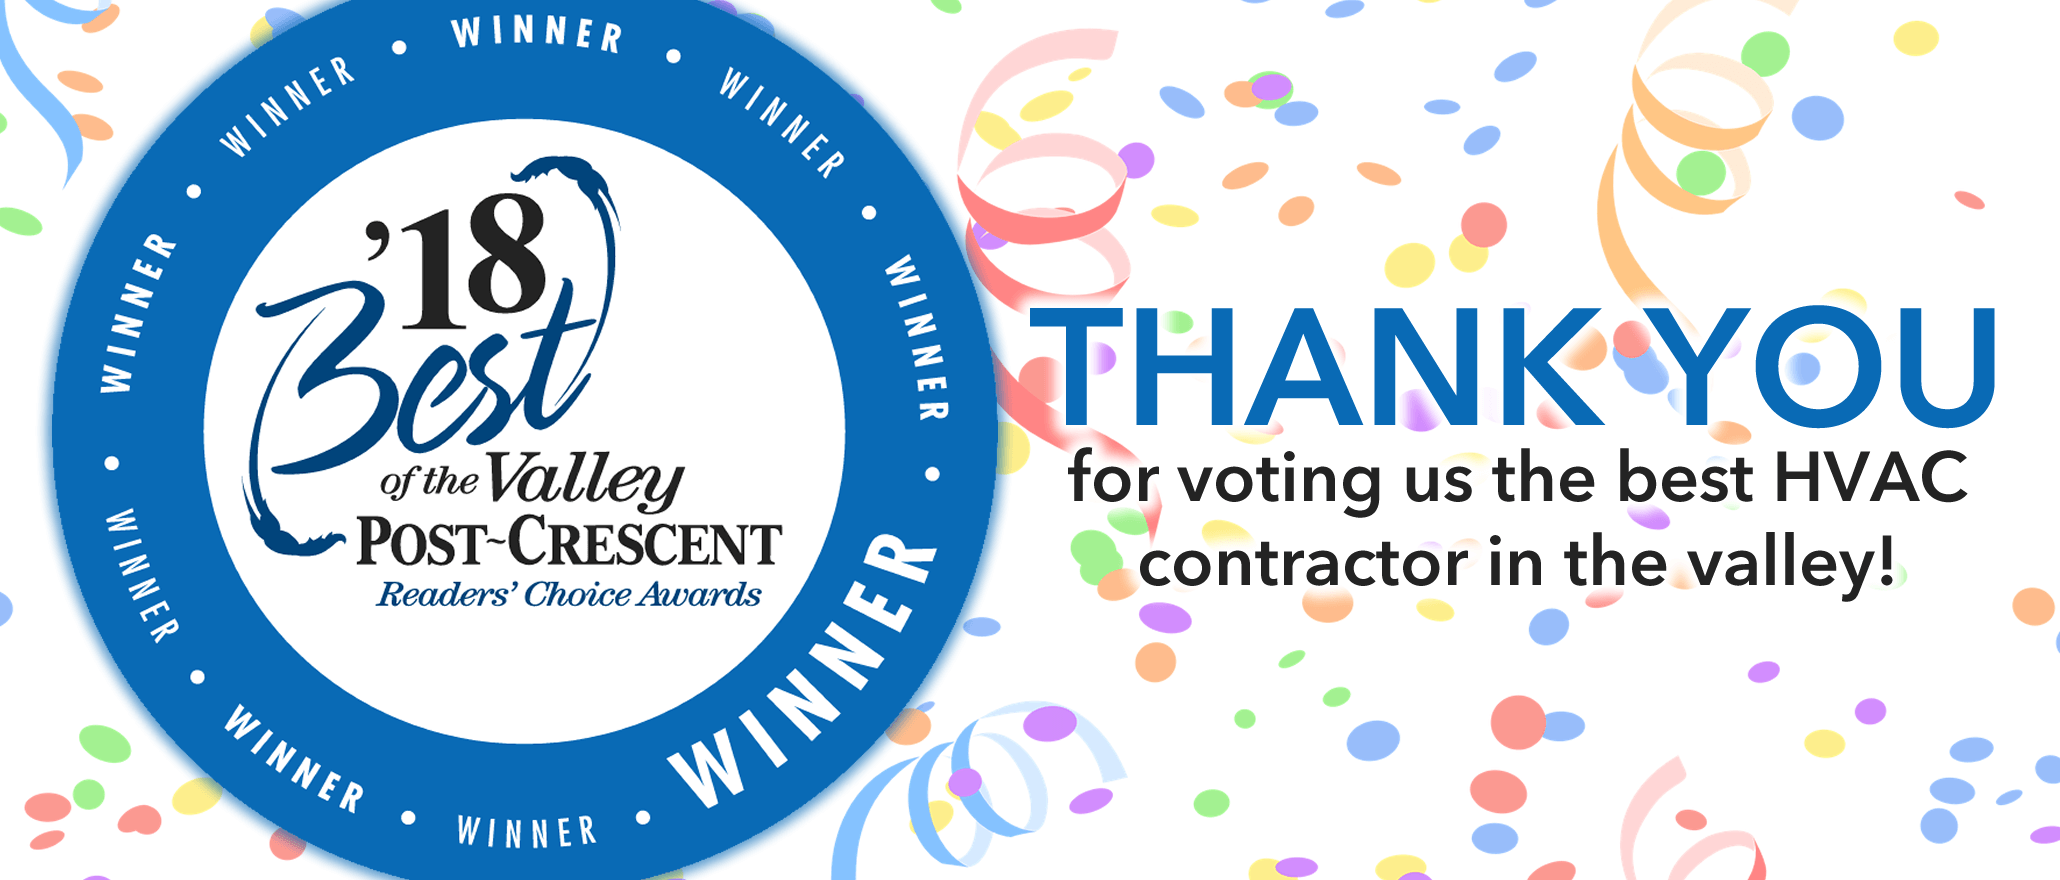 Thanks for voting us the best of the valley!